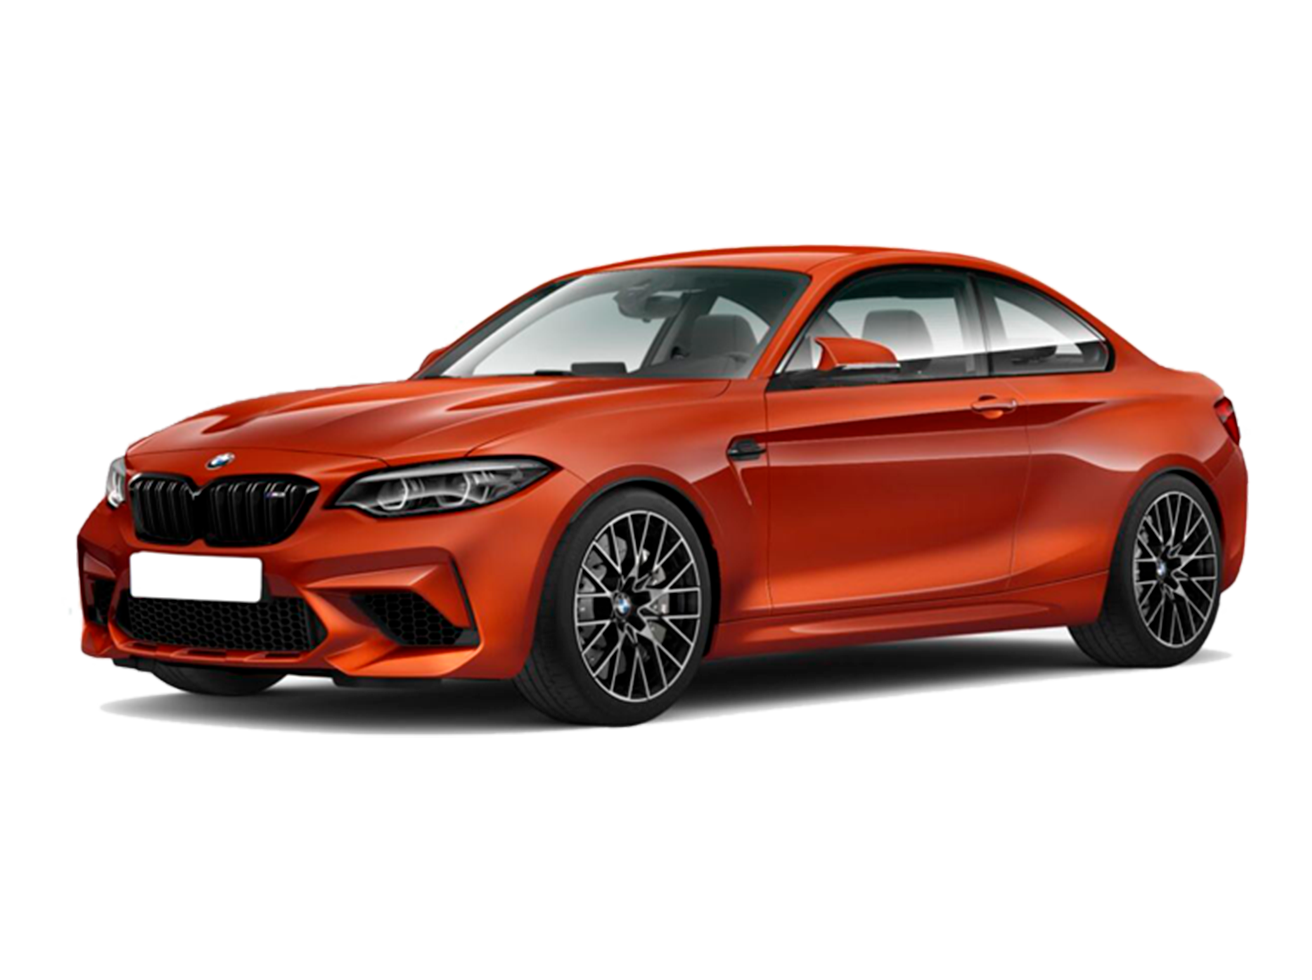 BMW - M2 - 3.0 24V I6 GASOLINA COMPETITION COUPÉ M MANUAL